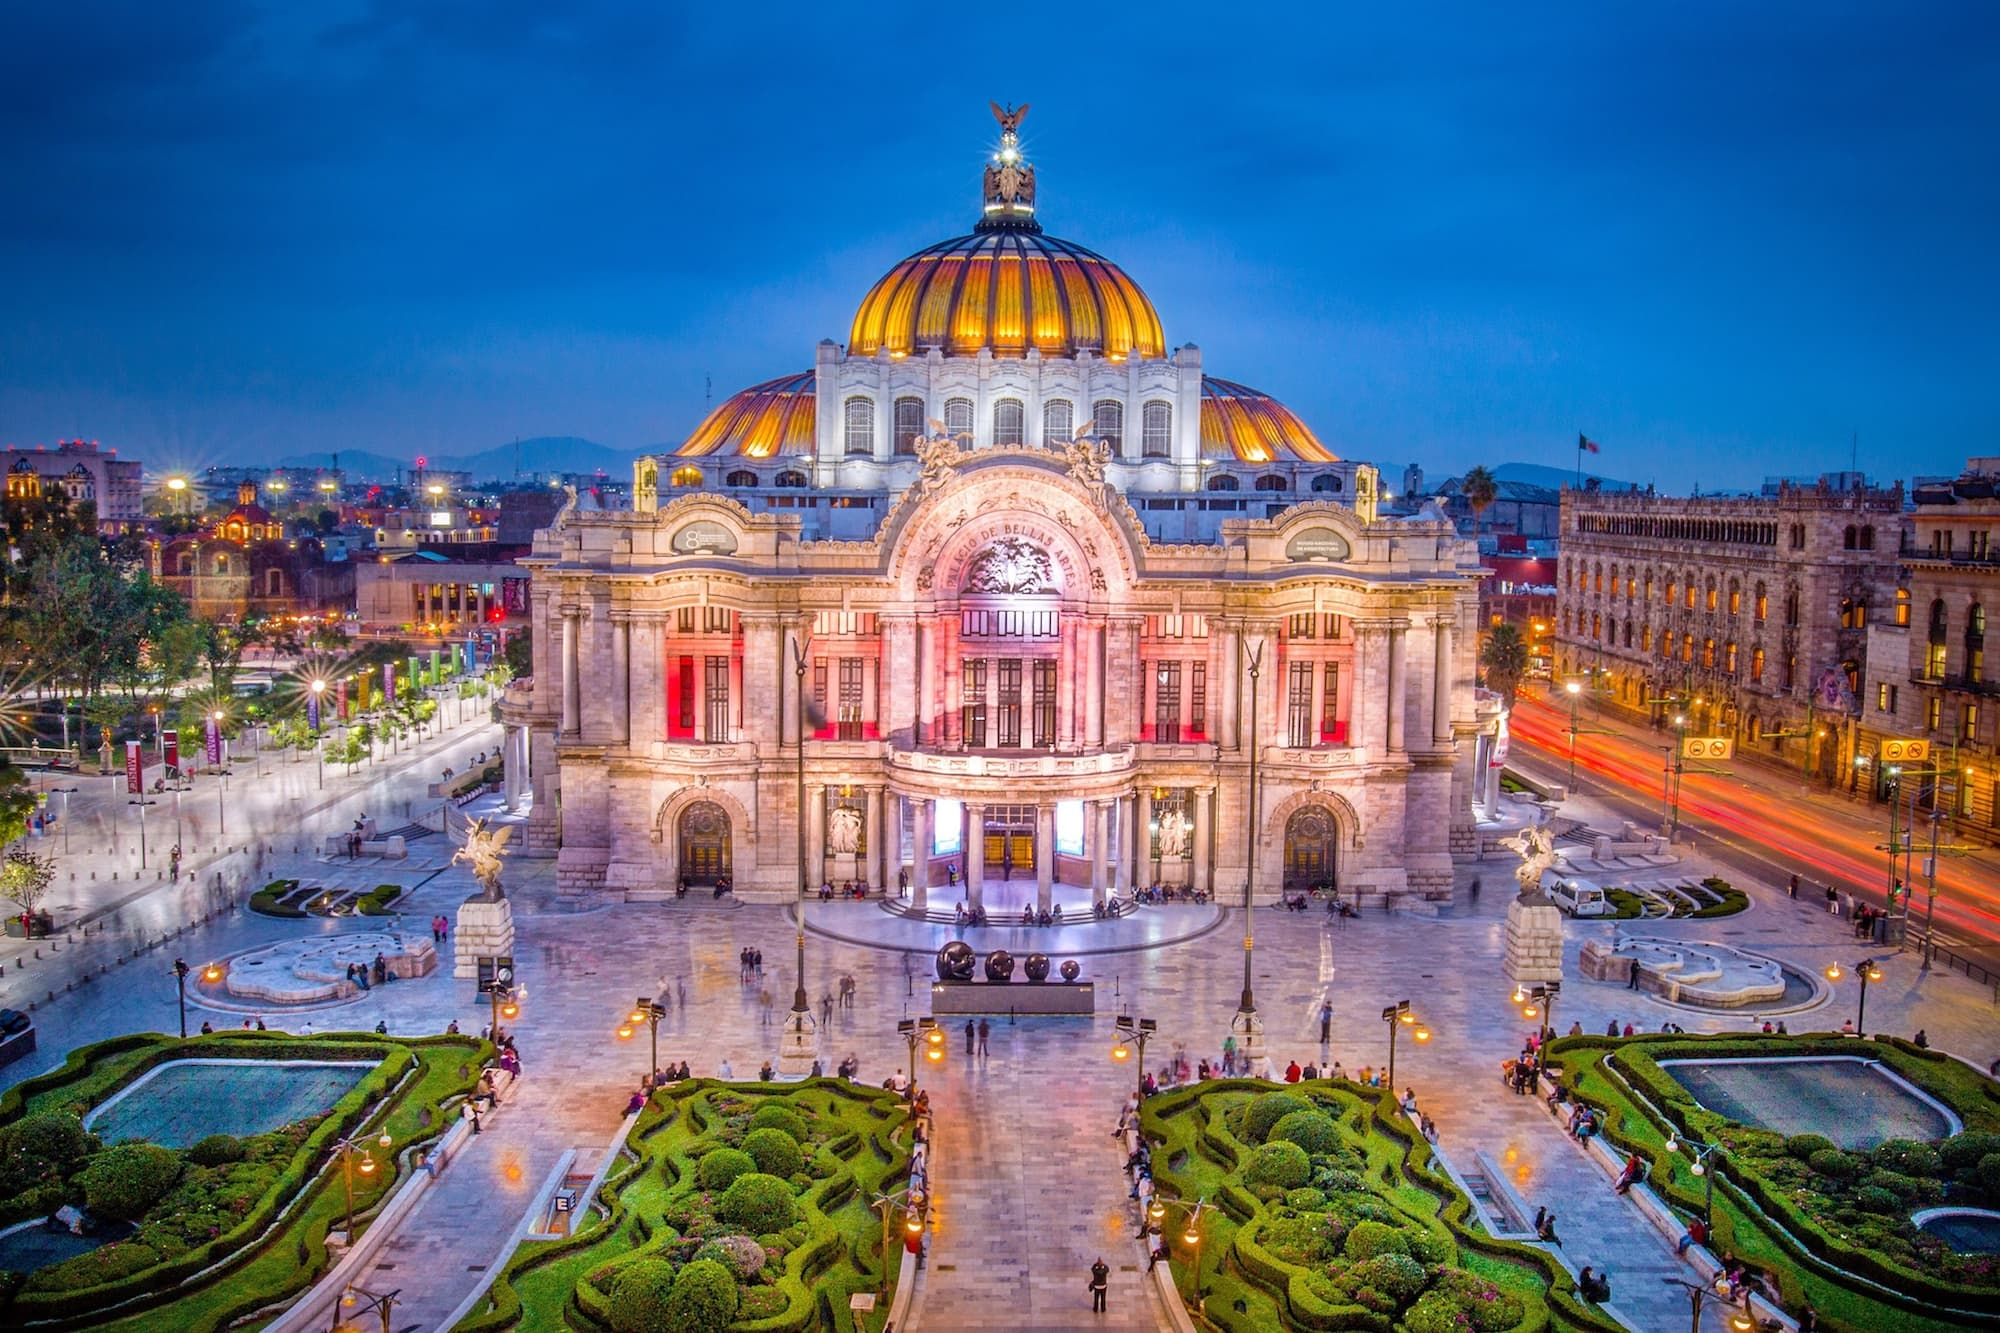 Mexico City makes the cut of 14 amazing domestic & international travel destinations at the top of our adventure bucketlist for 2019.